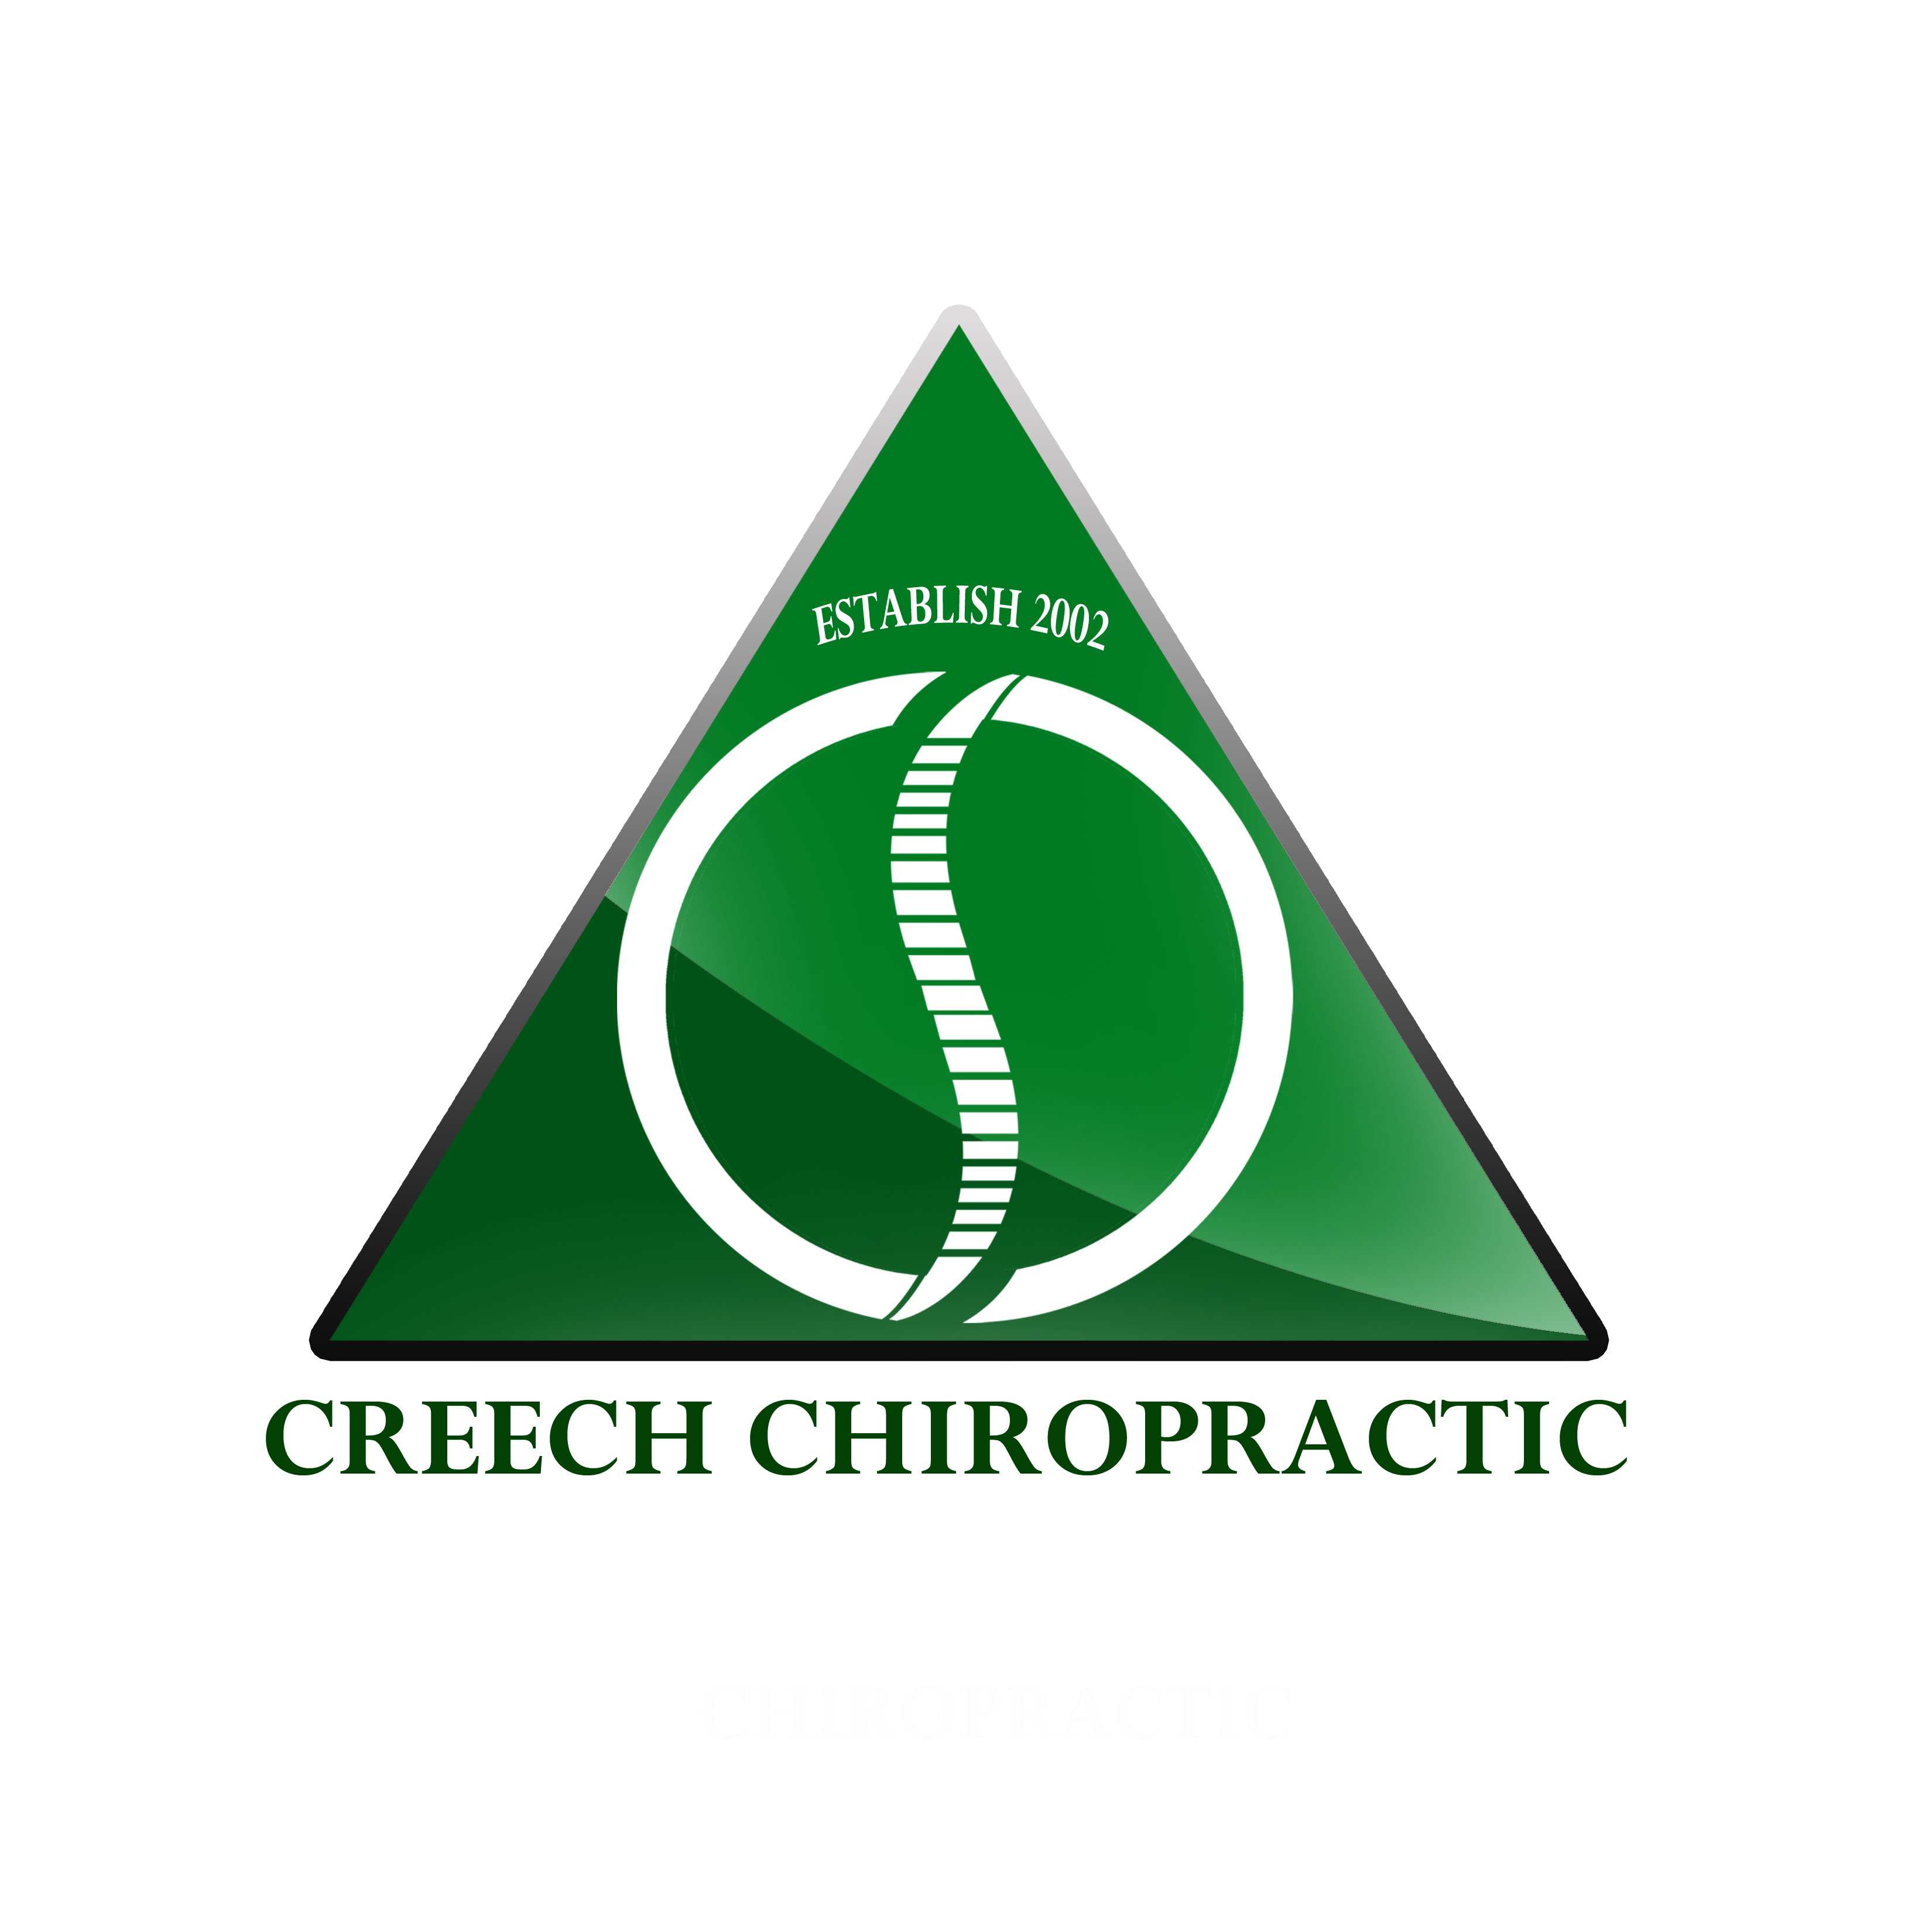 Logo Design by Allan Esclamado - Entry No. 8 in the Logo Design Contest Imaginative Logo Design for Creech Chiropractic.